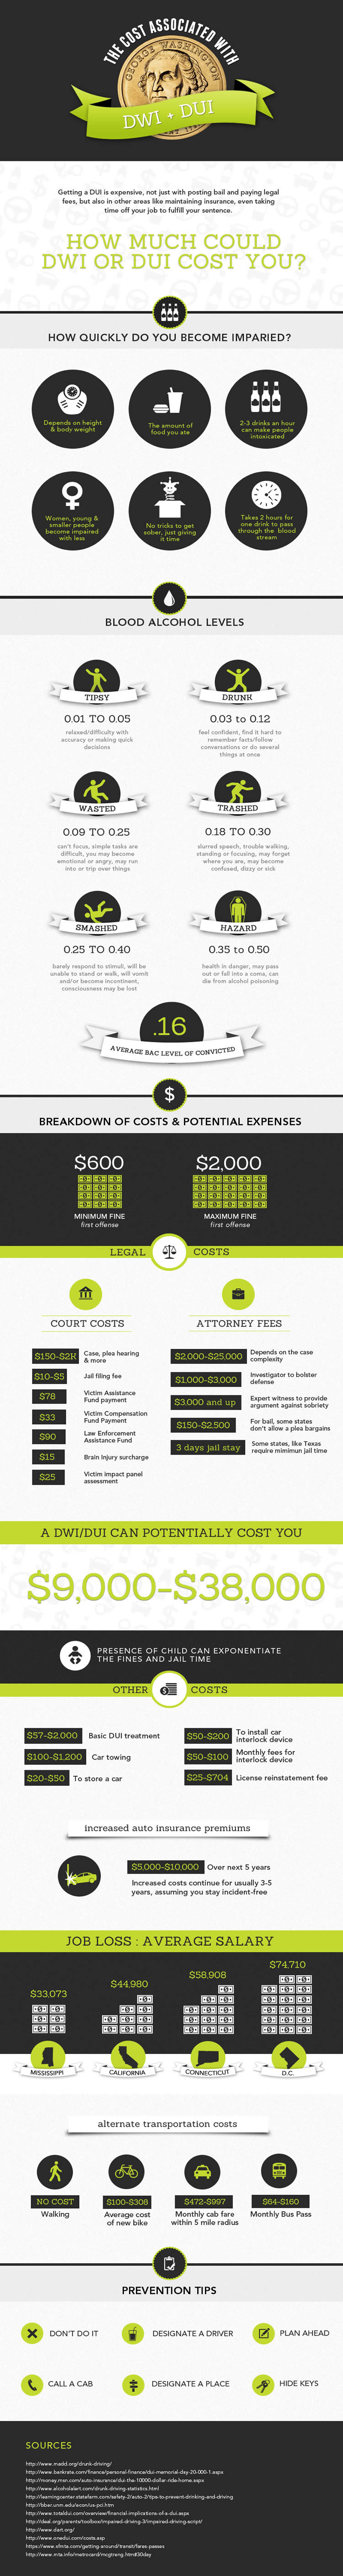 Cost of a DUI or DWI